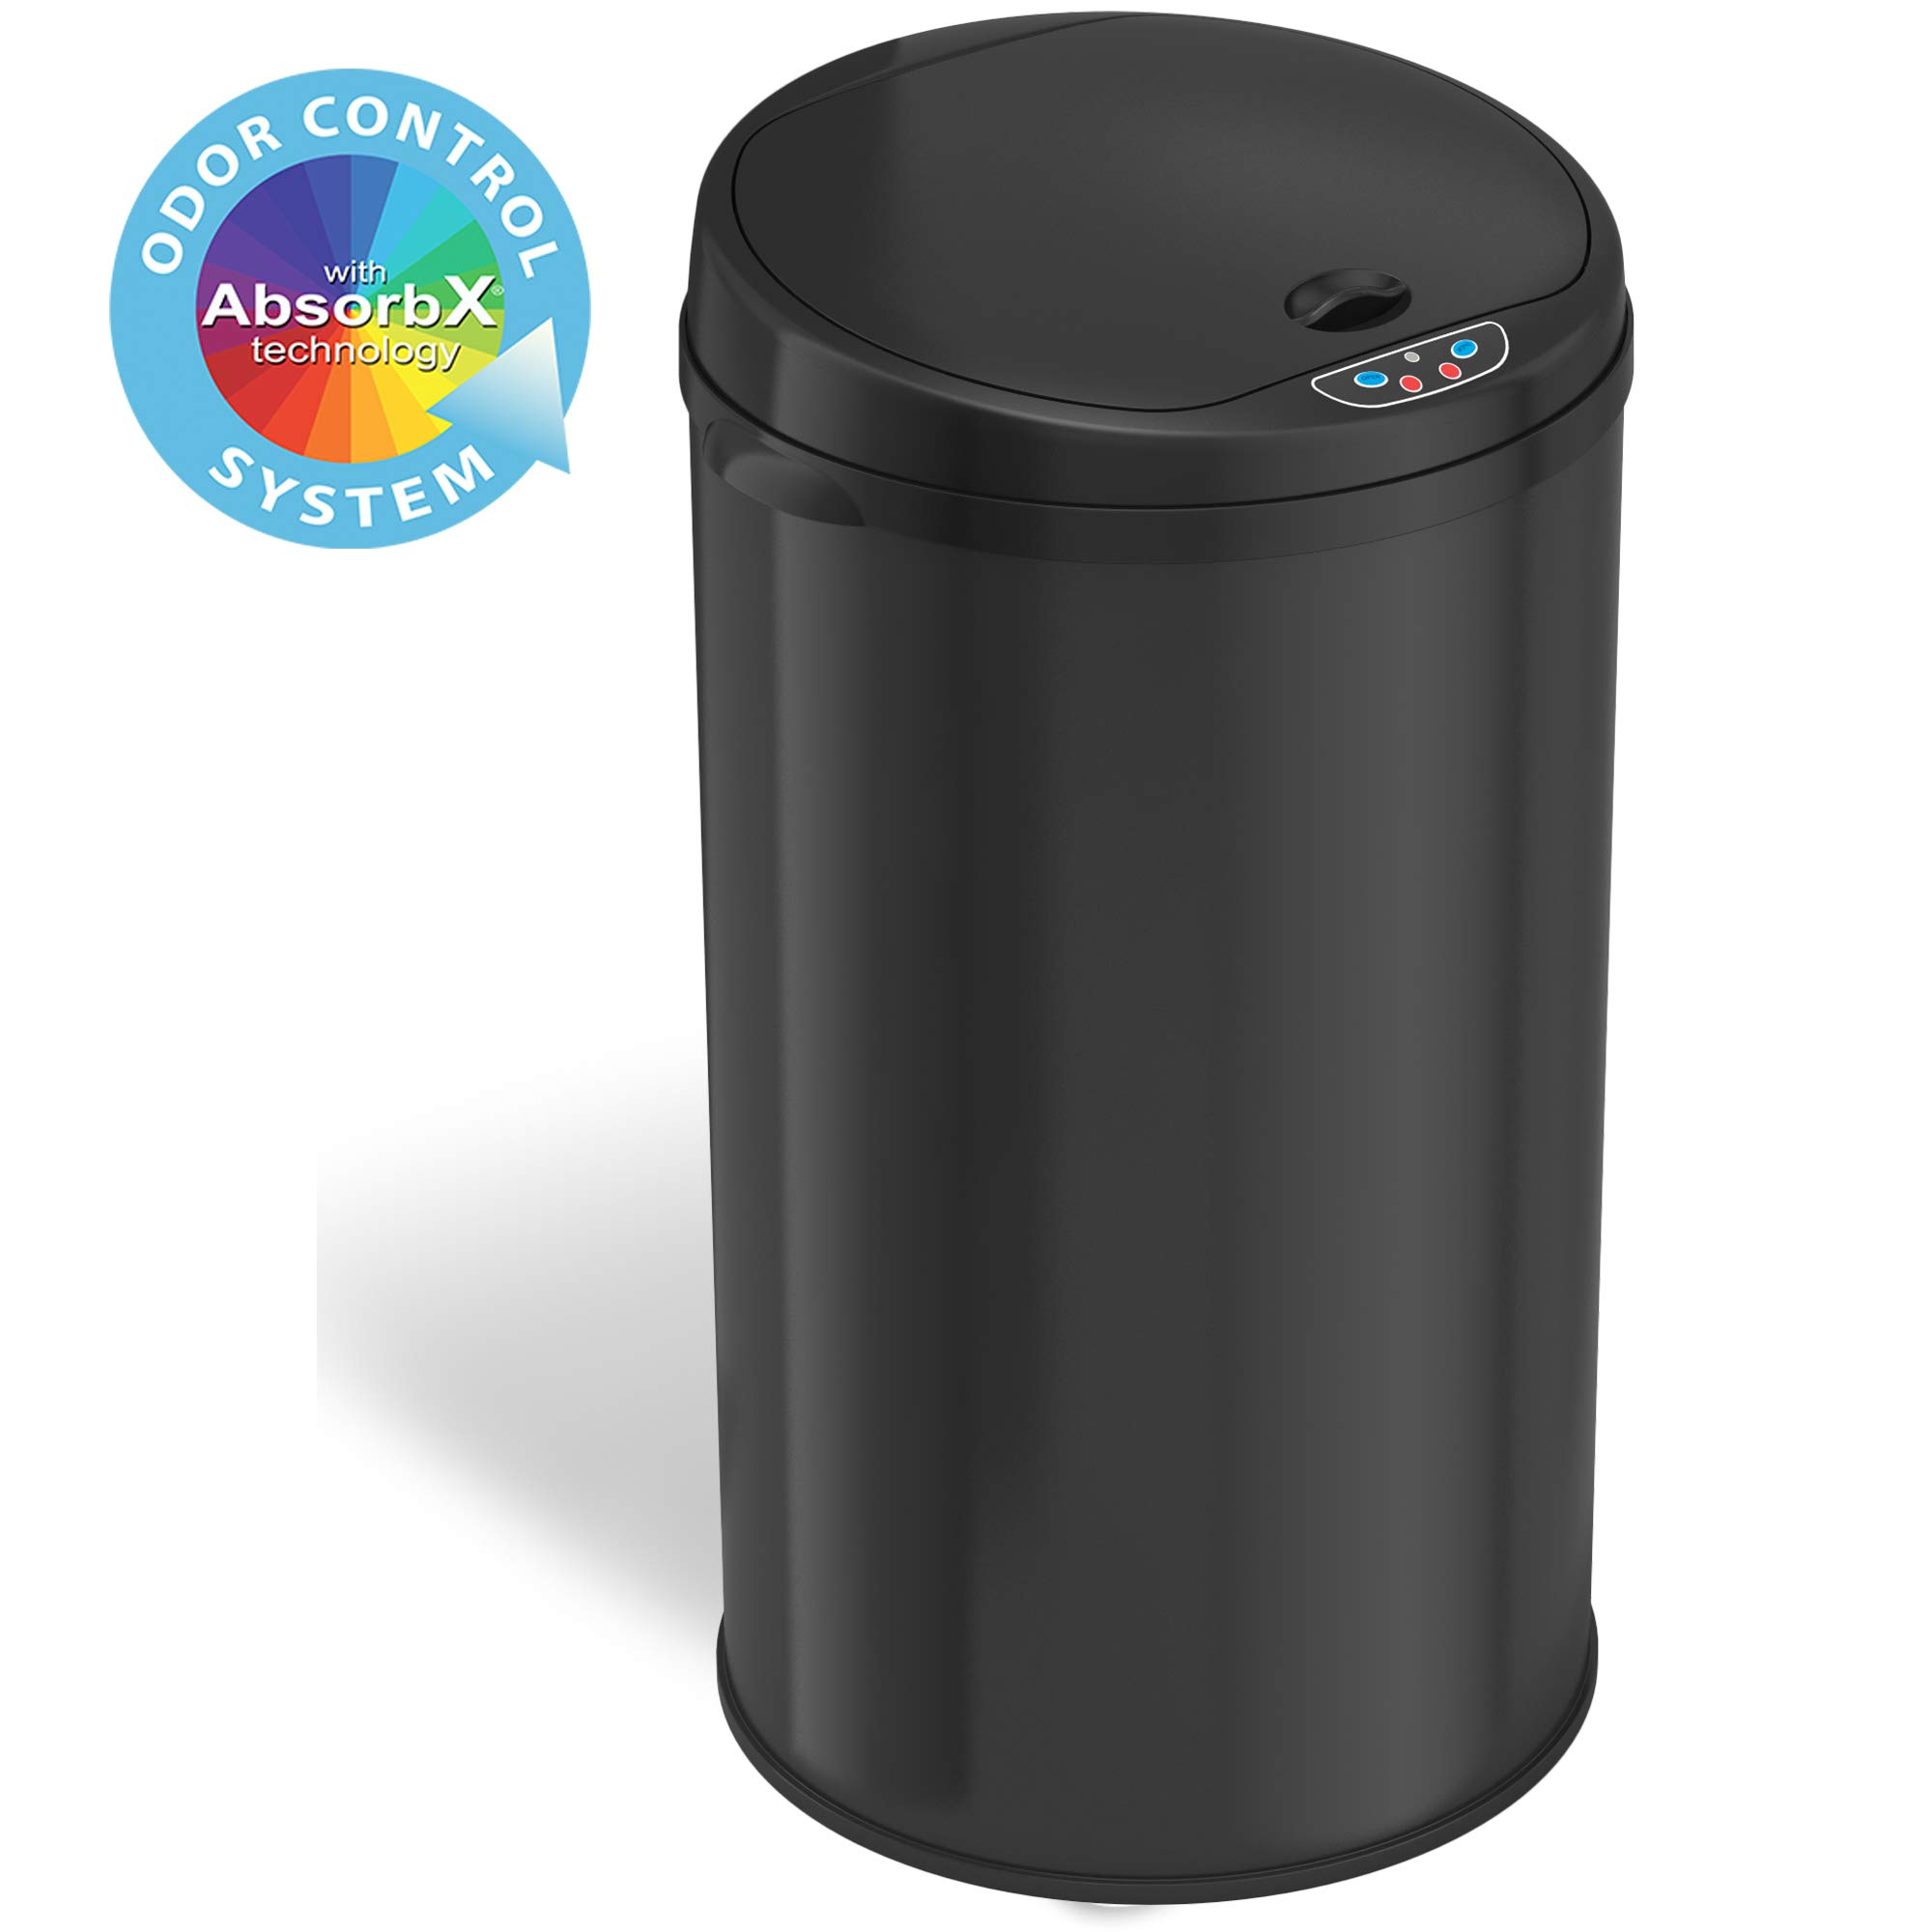 iTouchless 13 Gallon Touchless Sensor Trash Can with Odor Filter, Round Black Steel Garbage Bin, Perfect for Home, Kitchen, Office